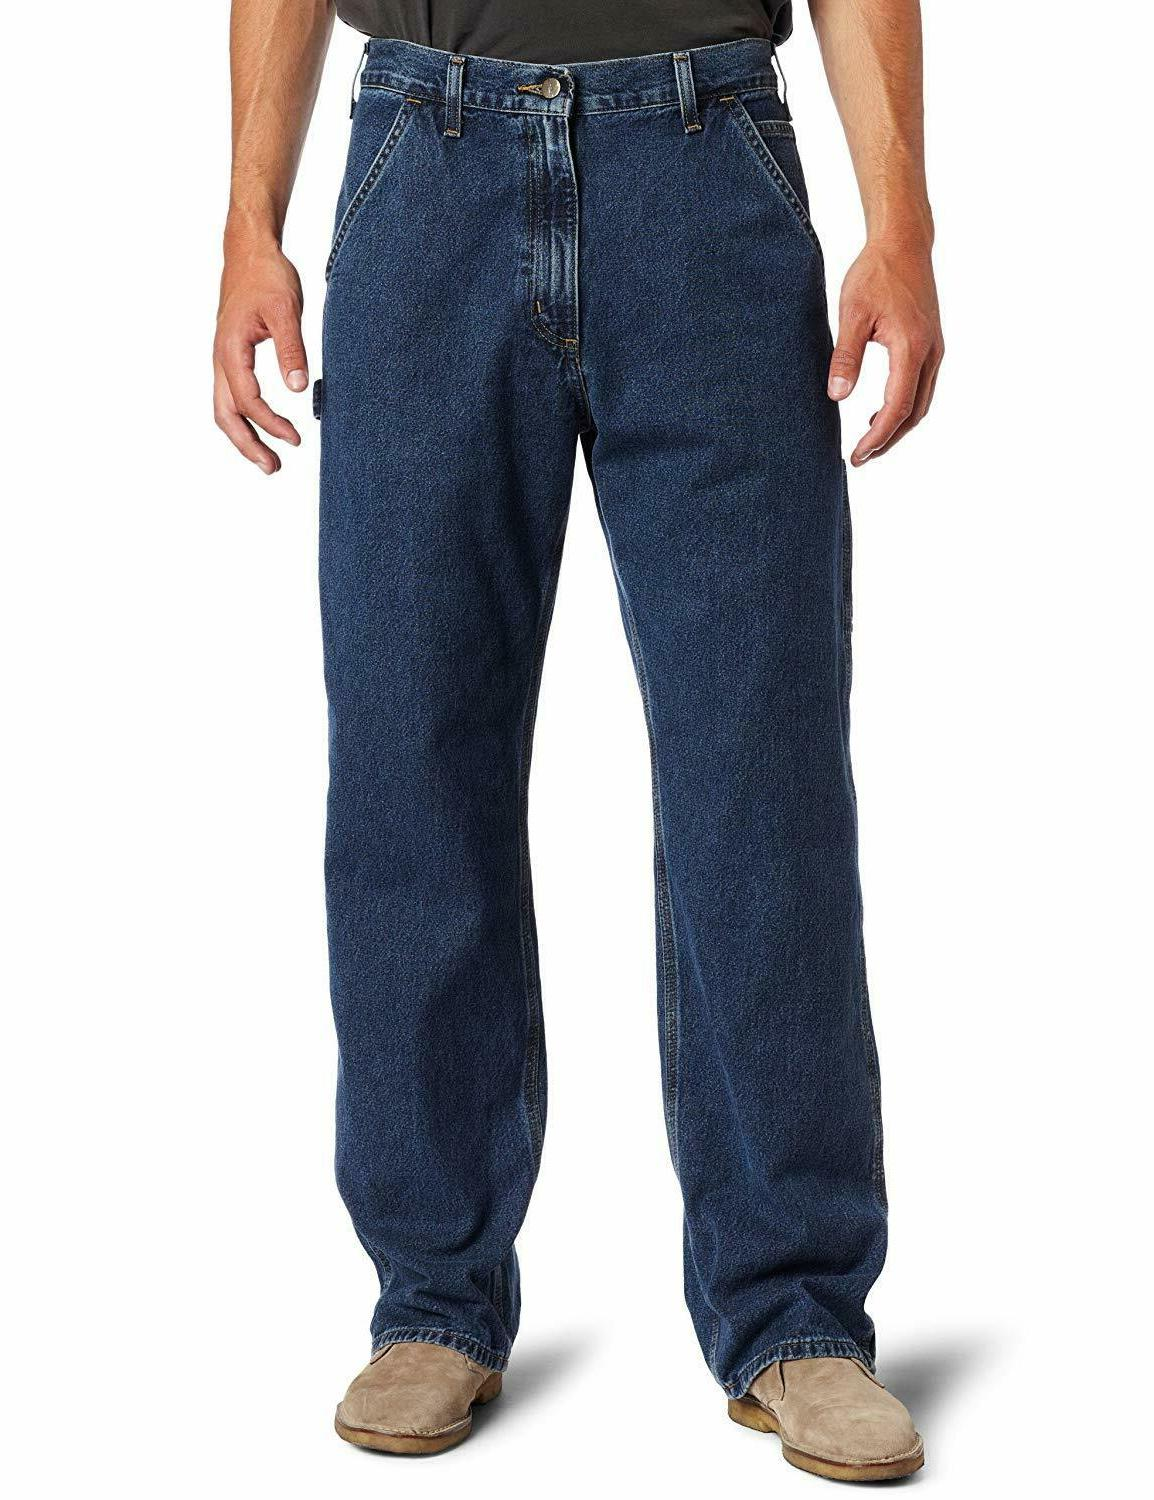 Carhartt Men's Original Fit Work B13